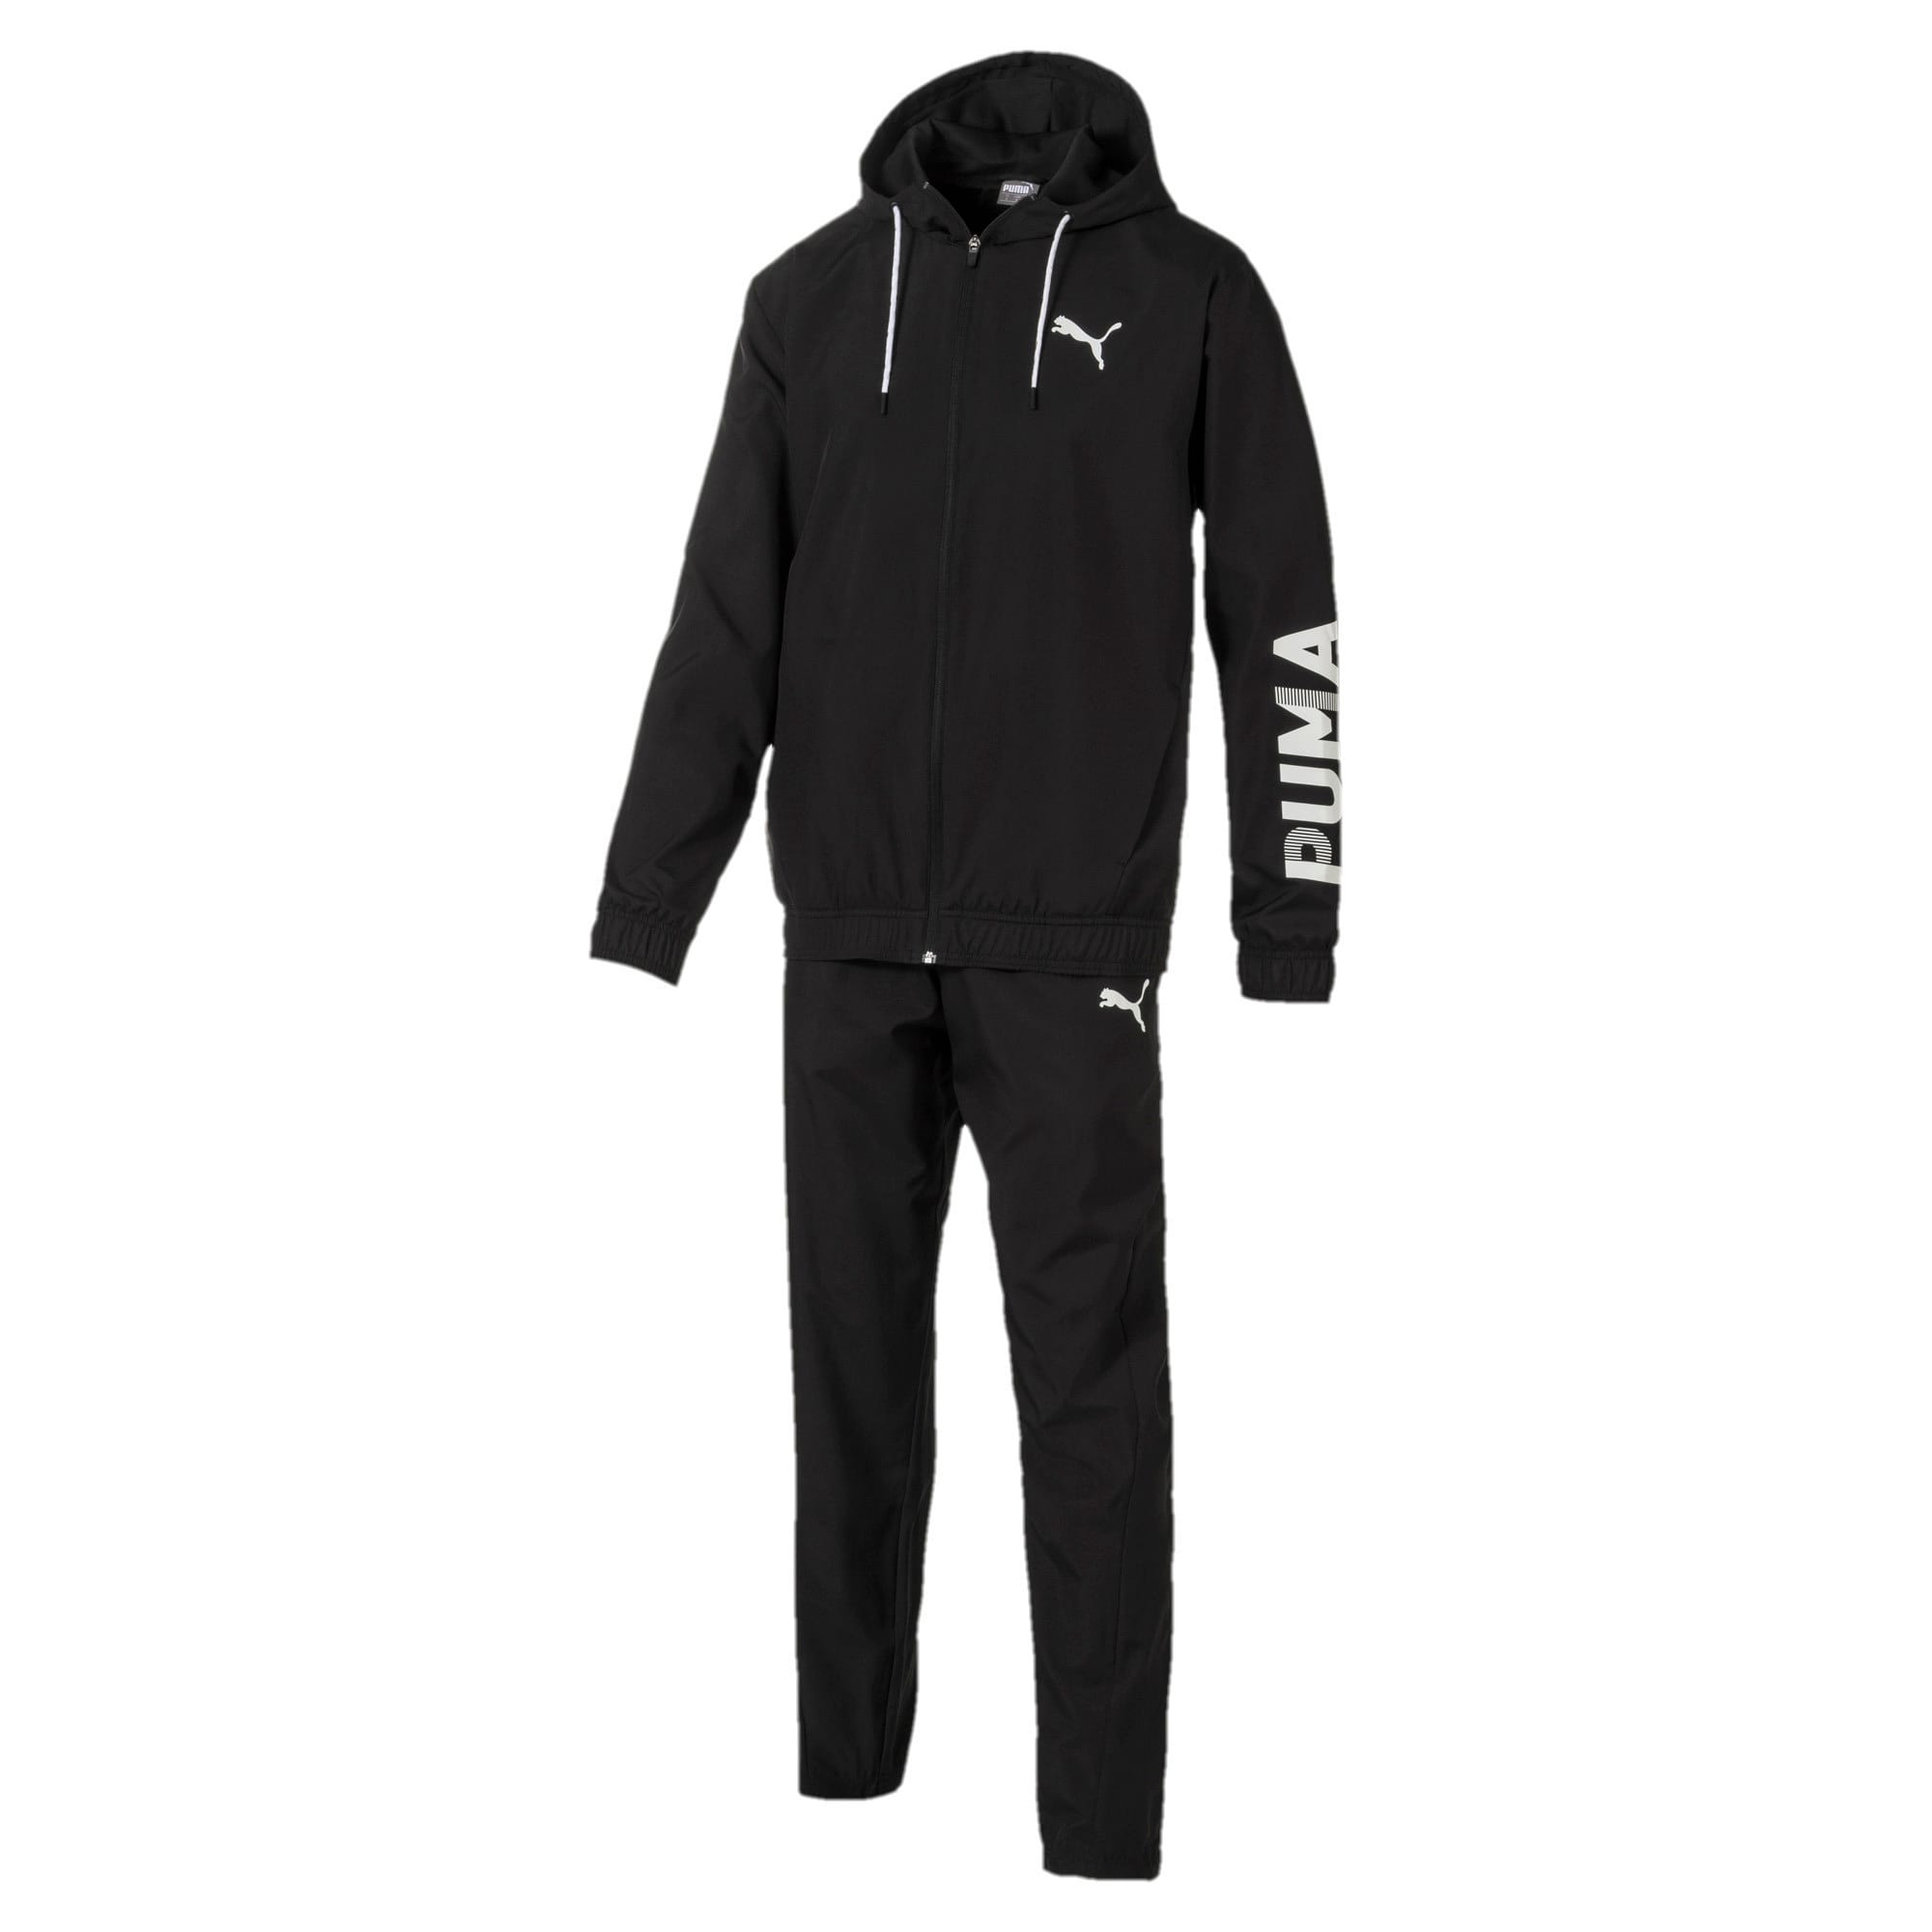 Thumbnail 1 of Modern Sport Hooded Men's Sweat Suit, Puma Black, medium-IND